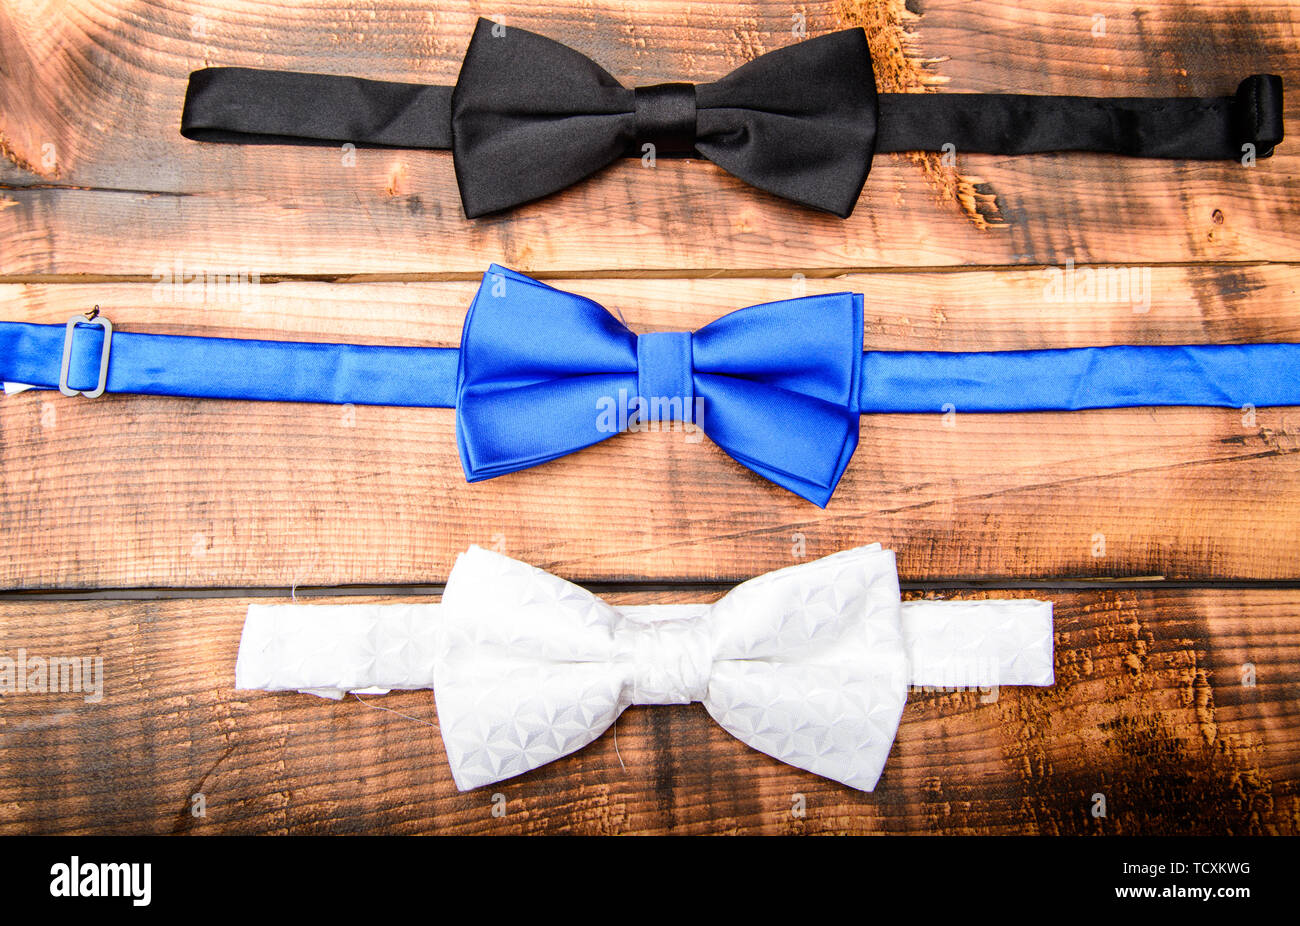 Fashion accessory. Esthete detail. Fix bow tie. Groom wedding. Textile fabric bow close up. Modern formal style. Menswear clothes. Perfect outfit. Tying bow tie. Wedding accessories. - Stock Image